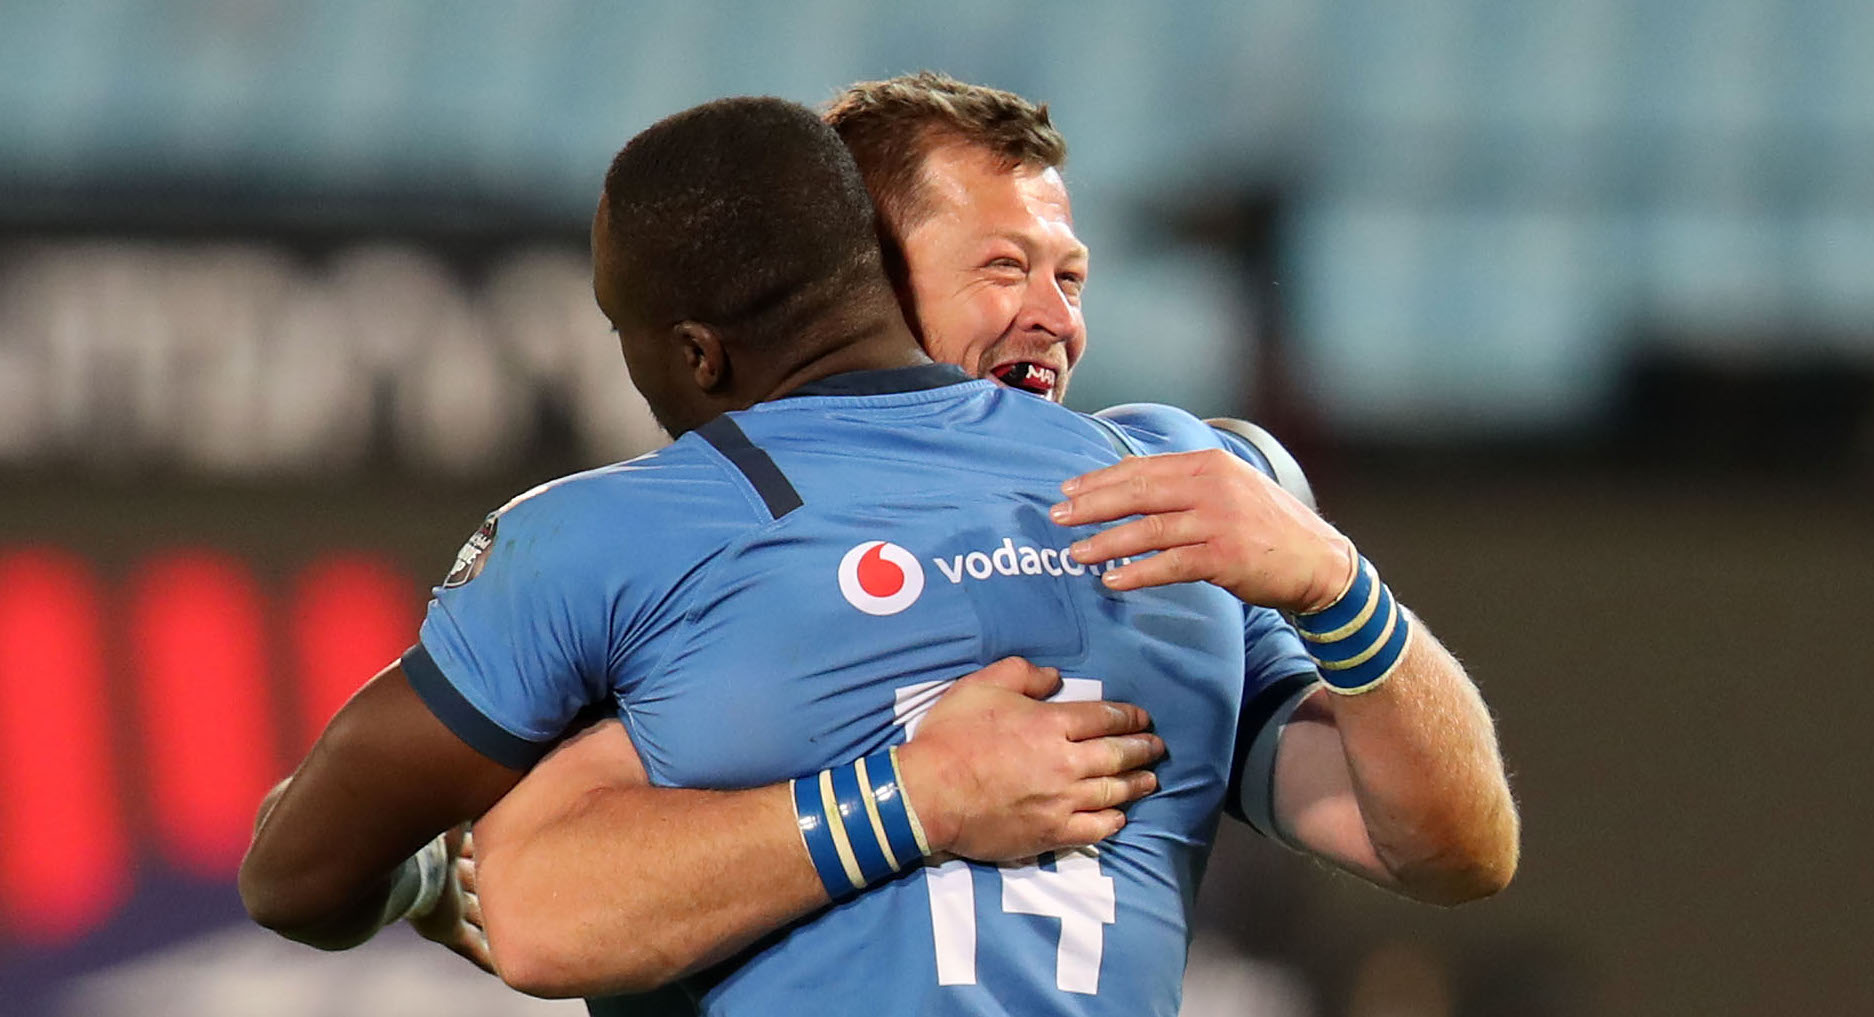 Combrinck: I've rediscovered that passion for the game - SARugbymag